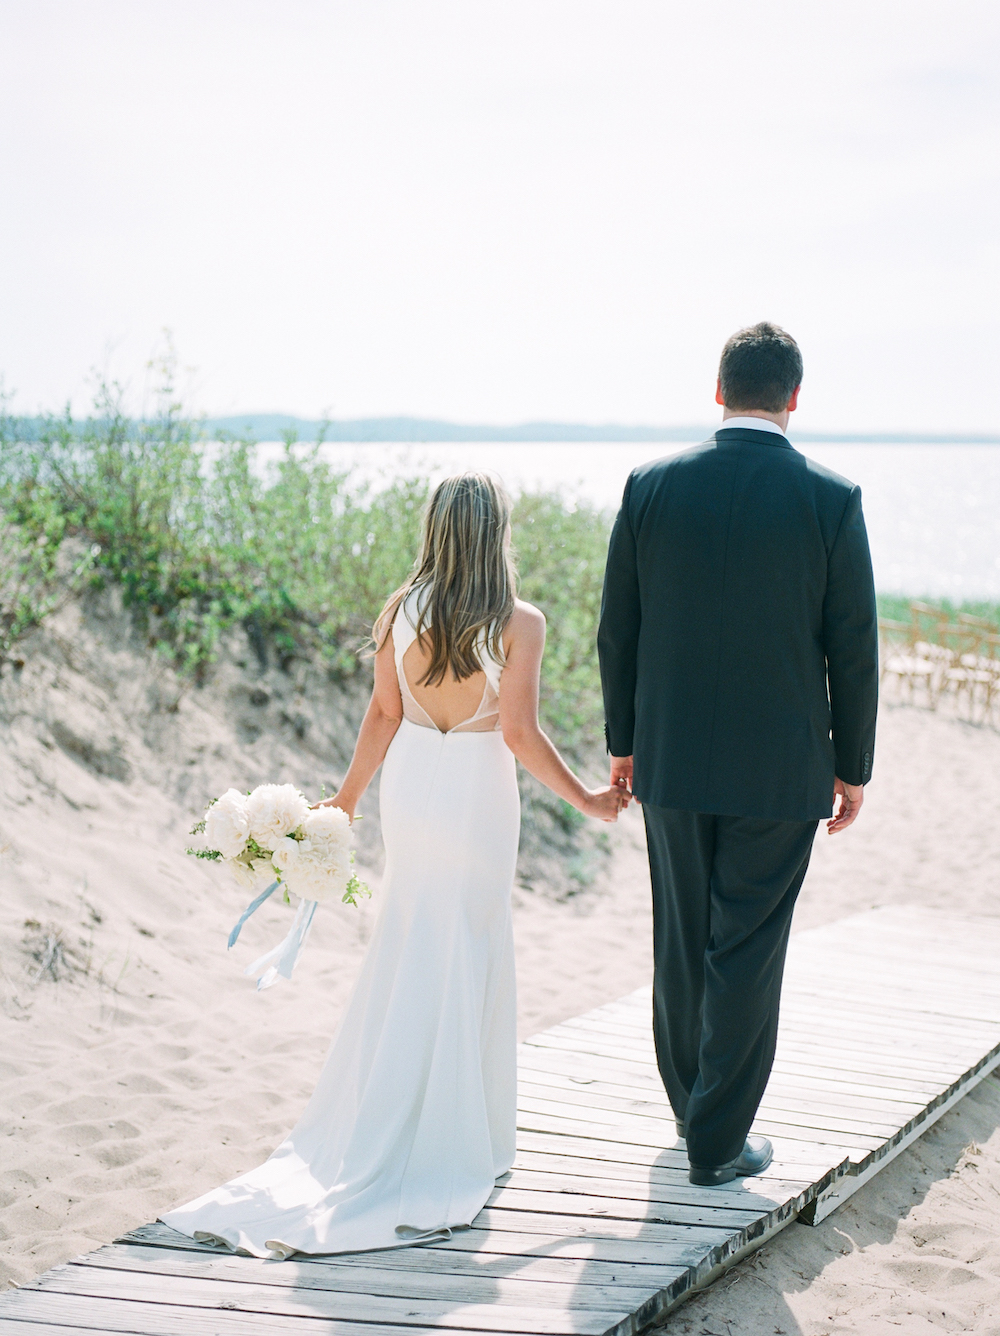 A couple during their Lake Michigan wedding